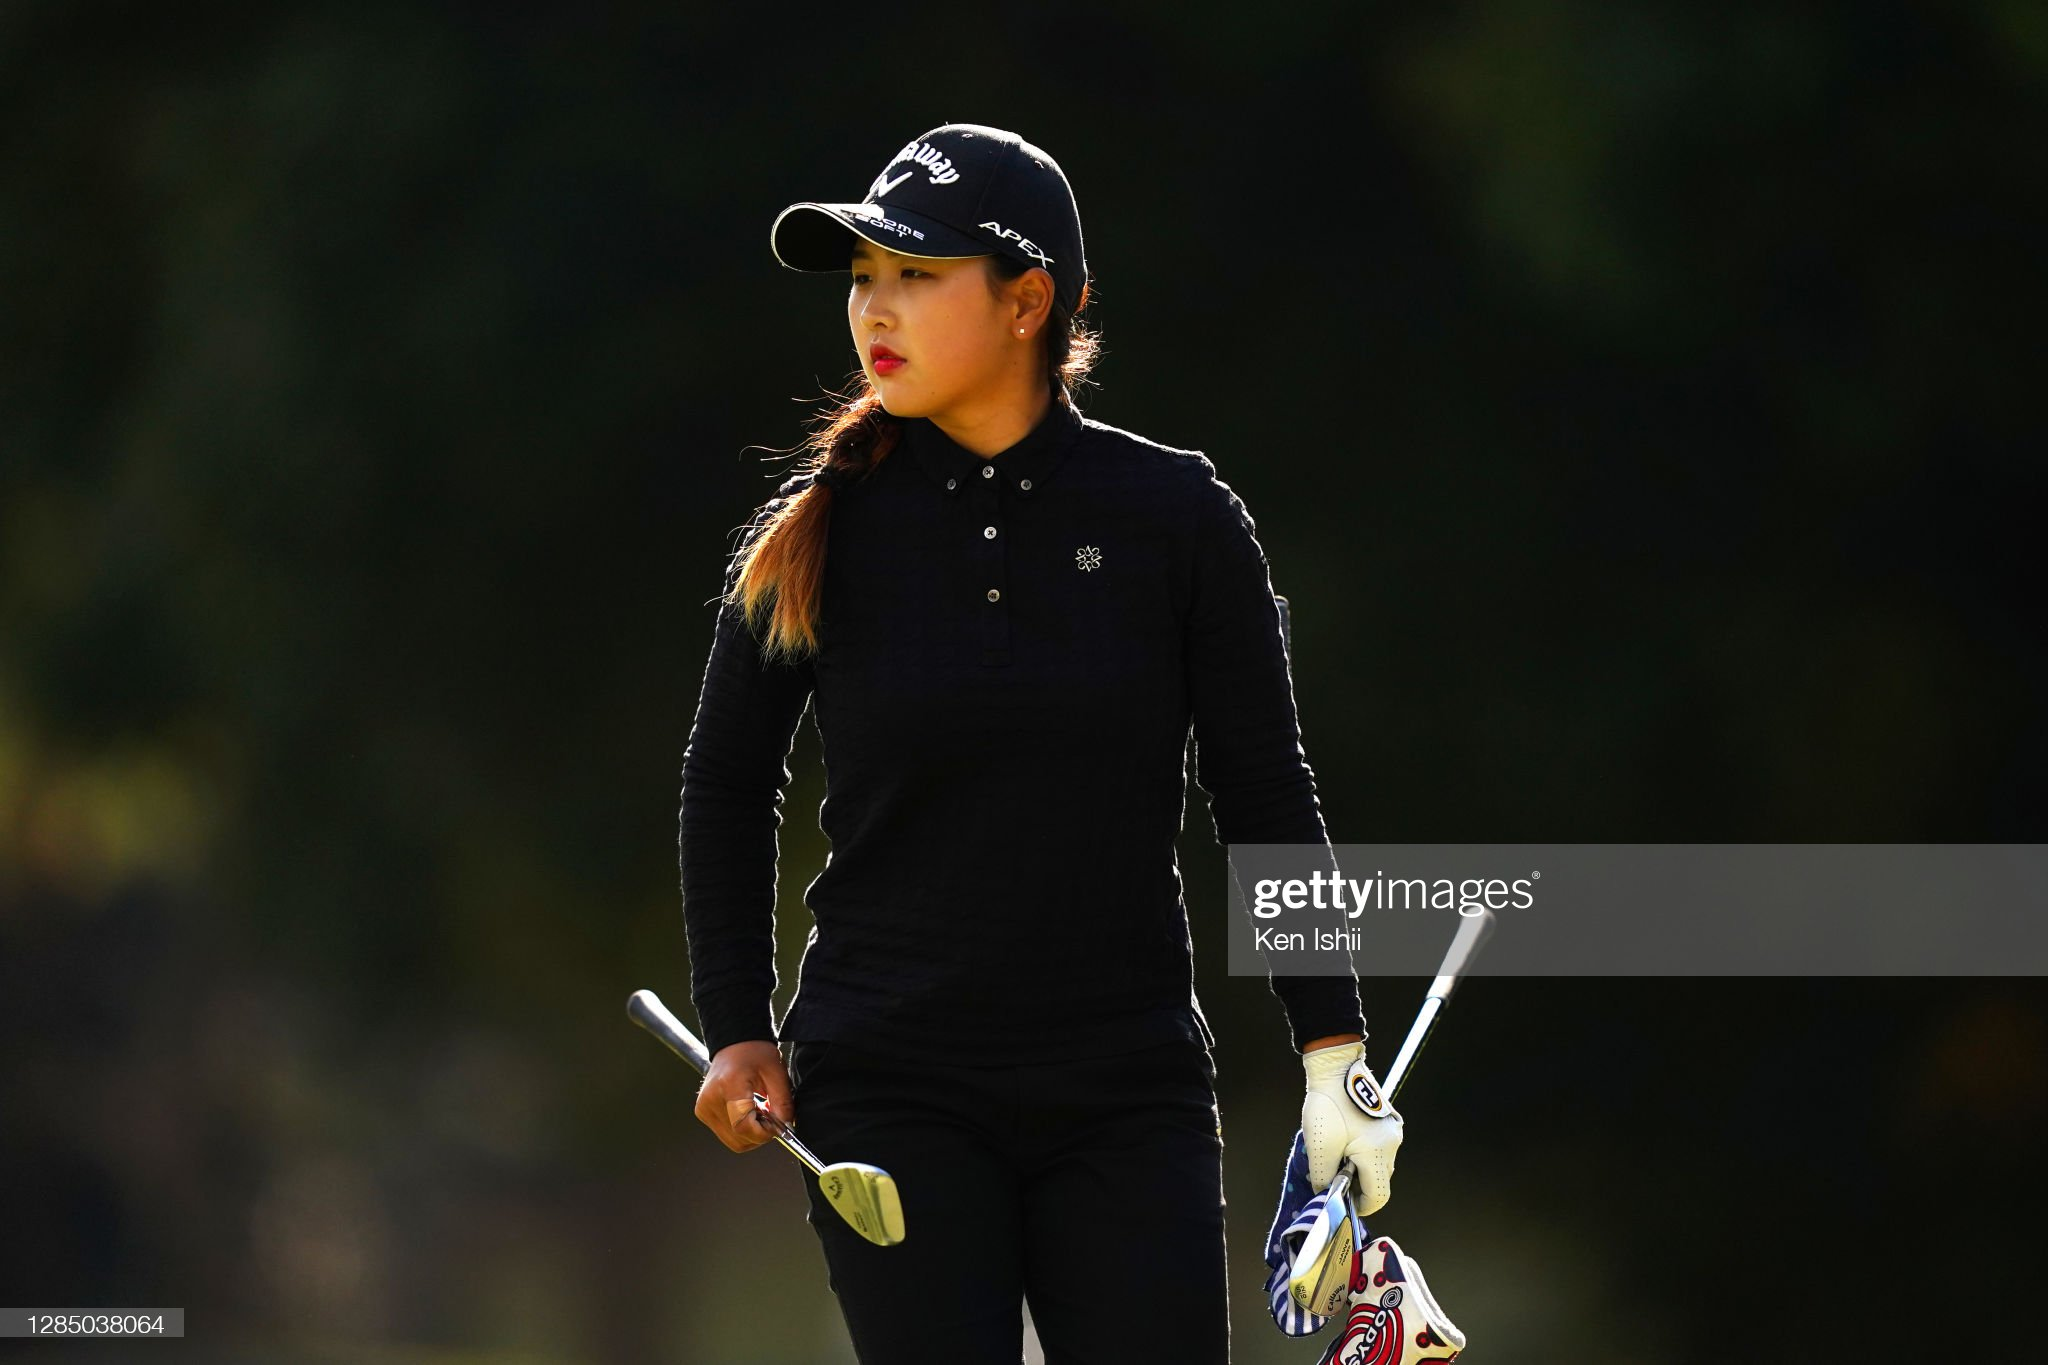 https://media.gettyimages.com/photos/hana-lee-of-south-korea-is-seen-on-the-14th-hole-during-the-second-picture-id1285038064?s=2048x2048